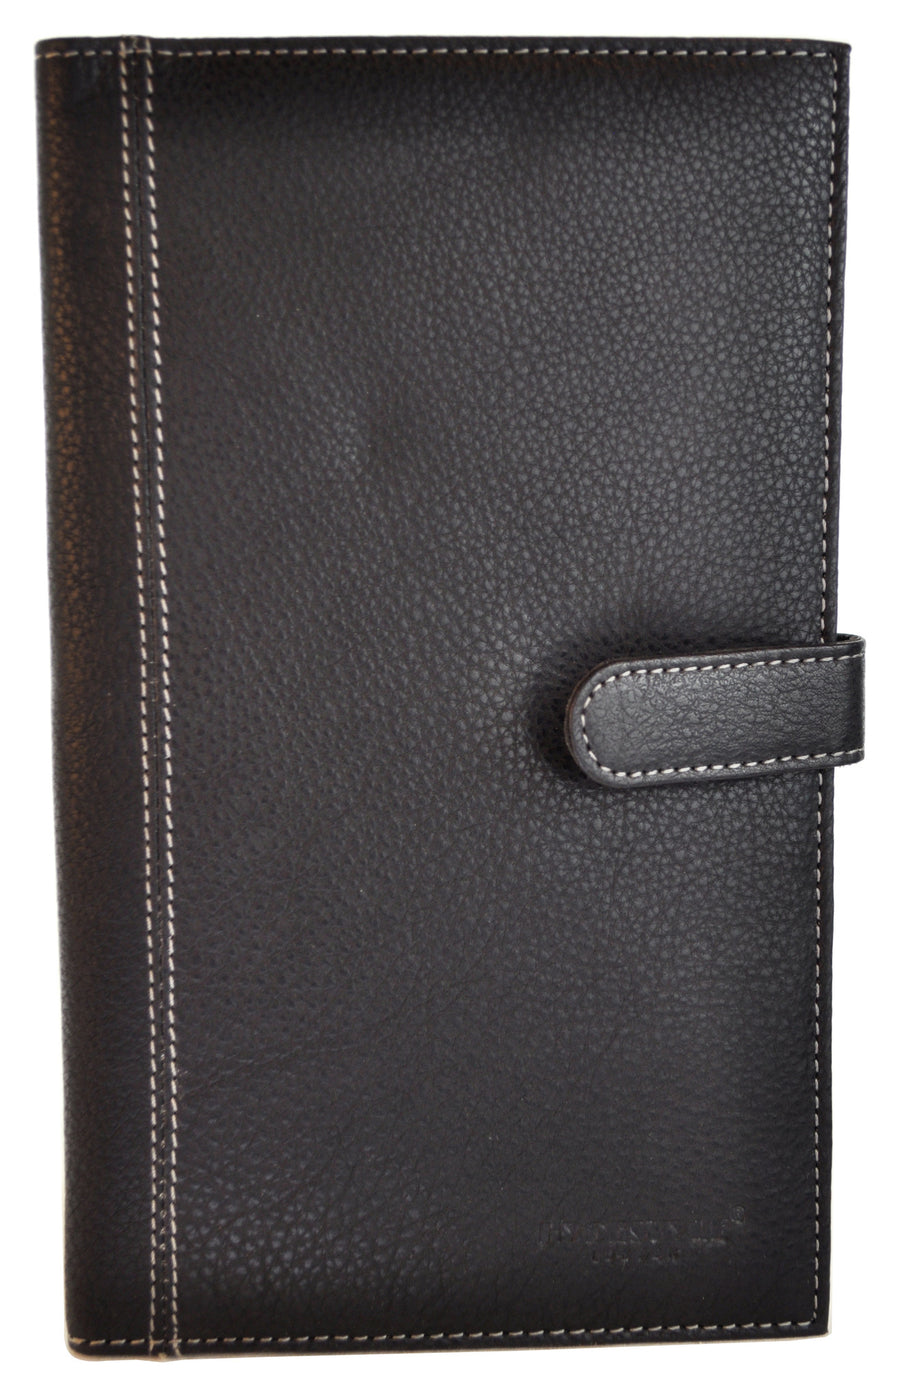 Pratico - leather travel wallet with Tab #TW01 Black